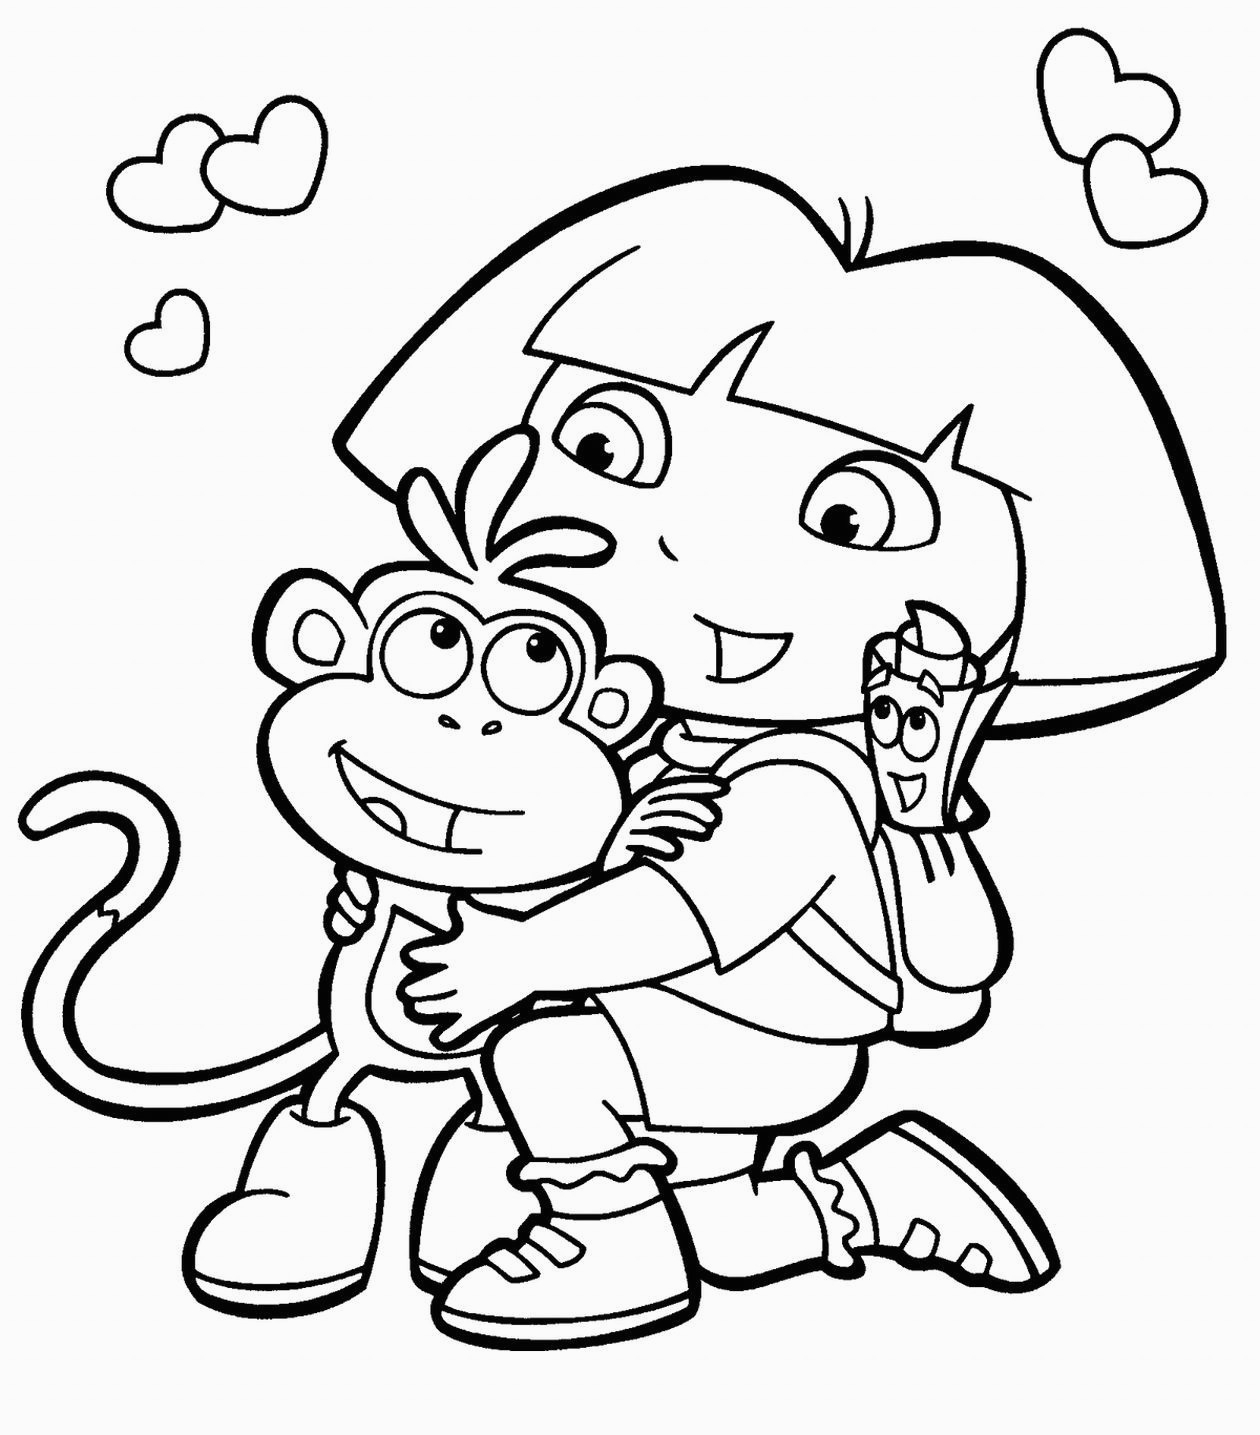 - Free Childrens Coloring Pages Best Free Printable Coloring Pages